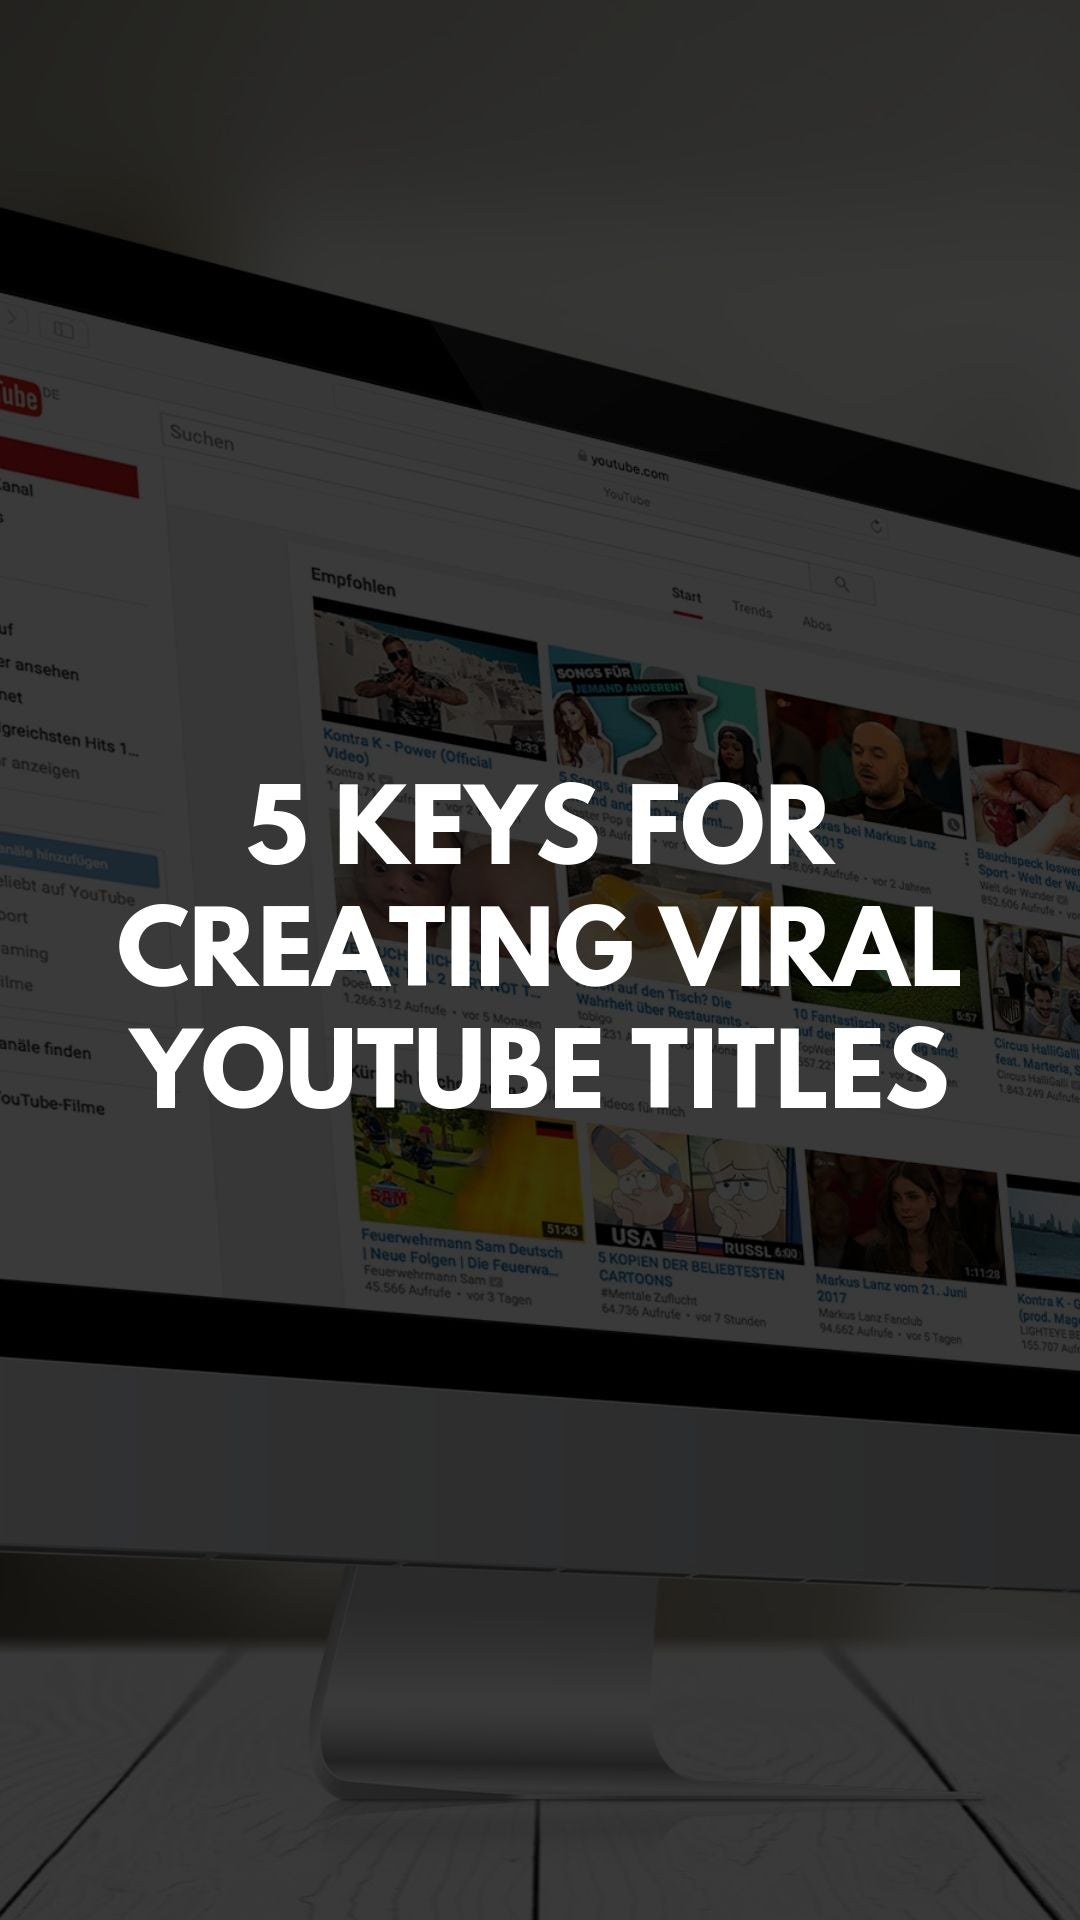 5 Keys For Creating Viral YouTube Titles